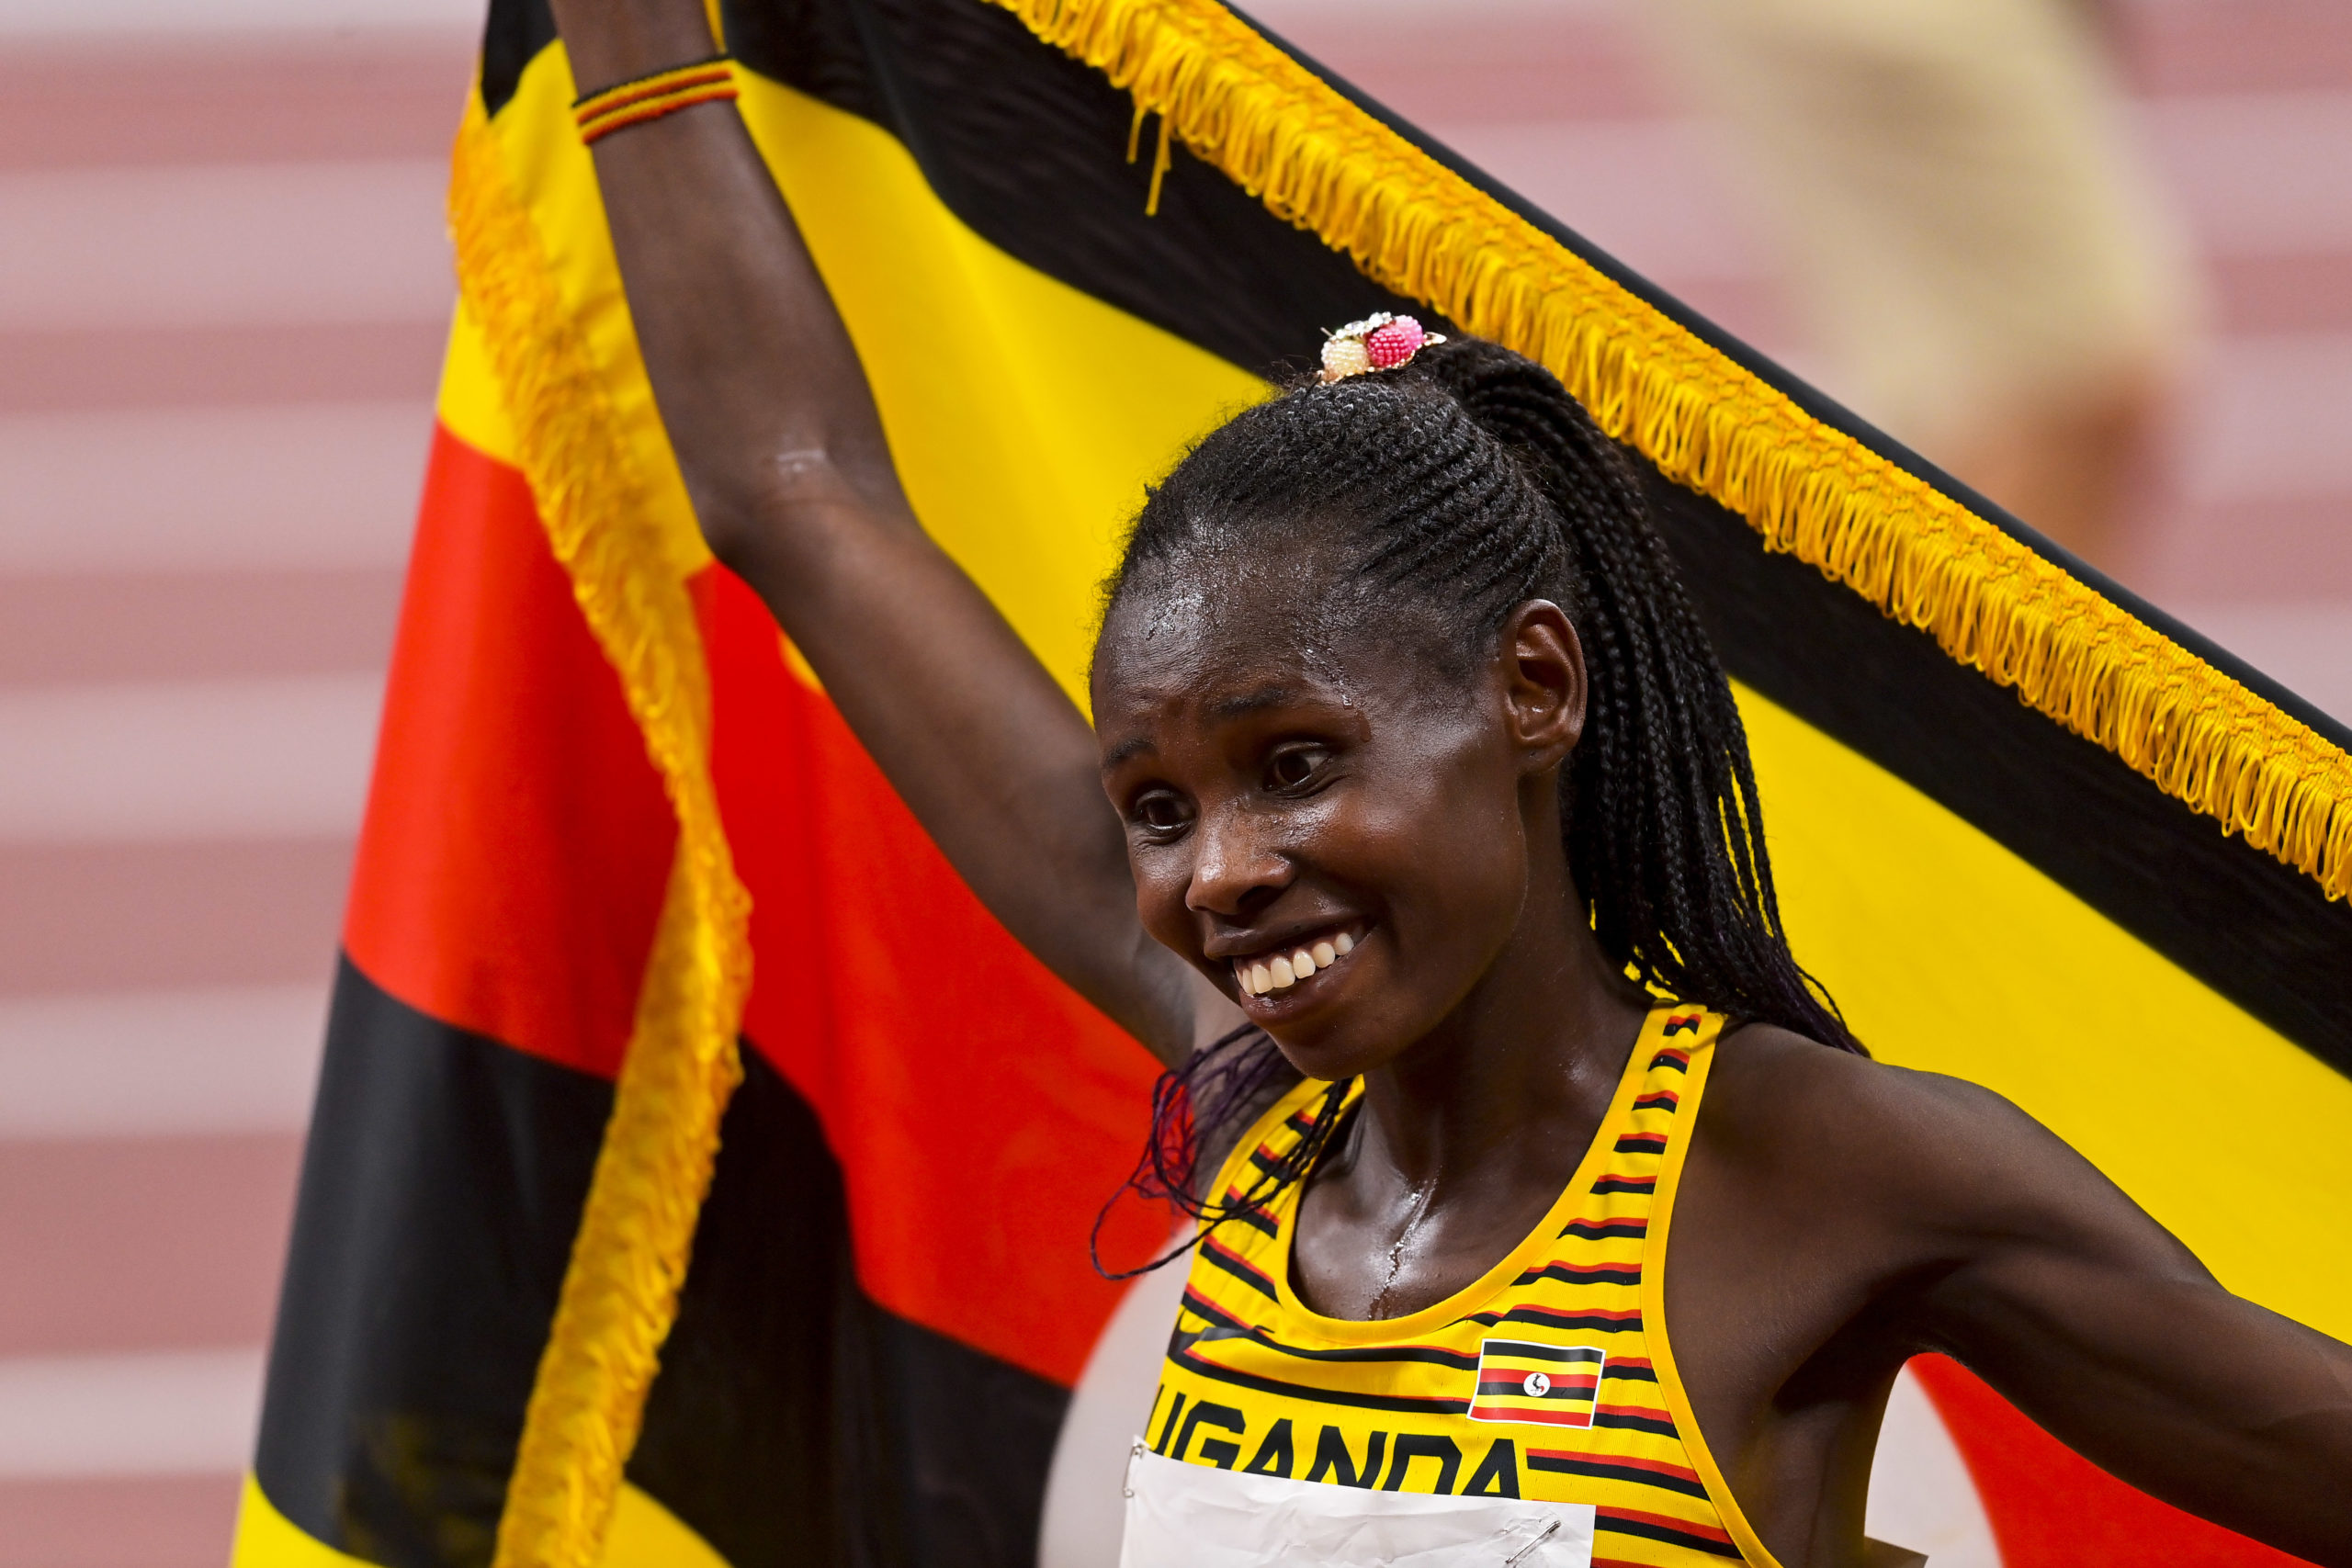 Africa in the news: Ethiopia updates, Zambia elections, and Africa's many Olympic achievements 1